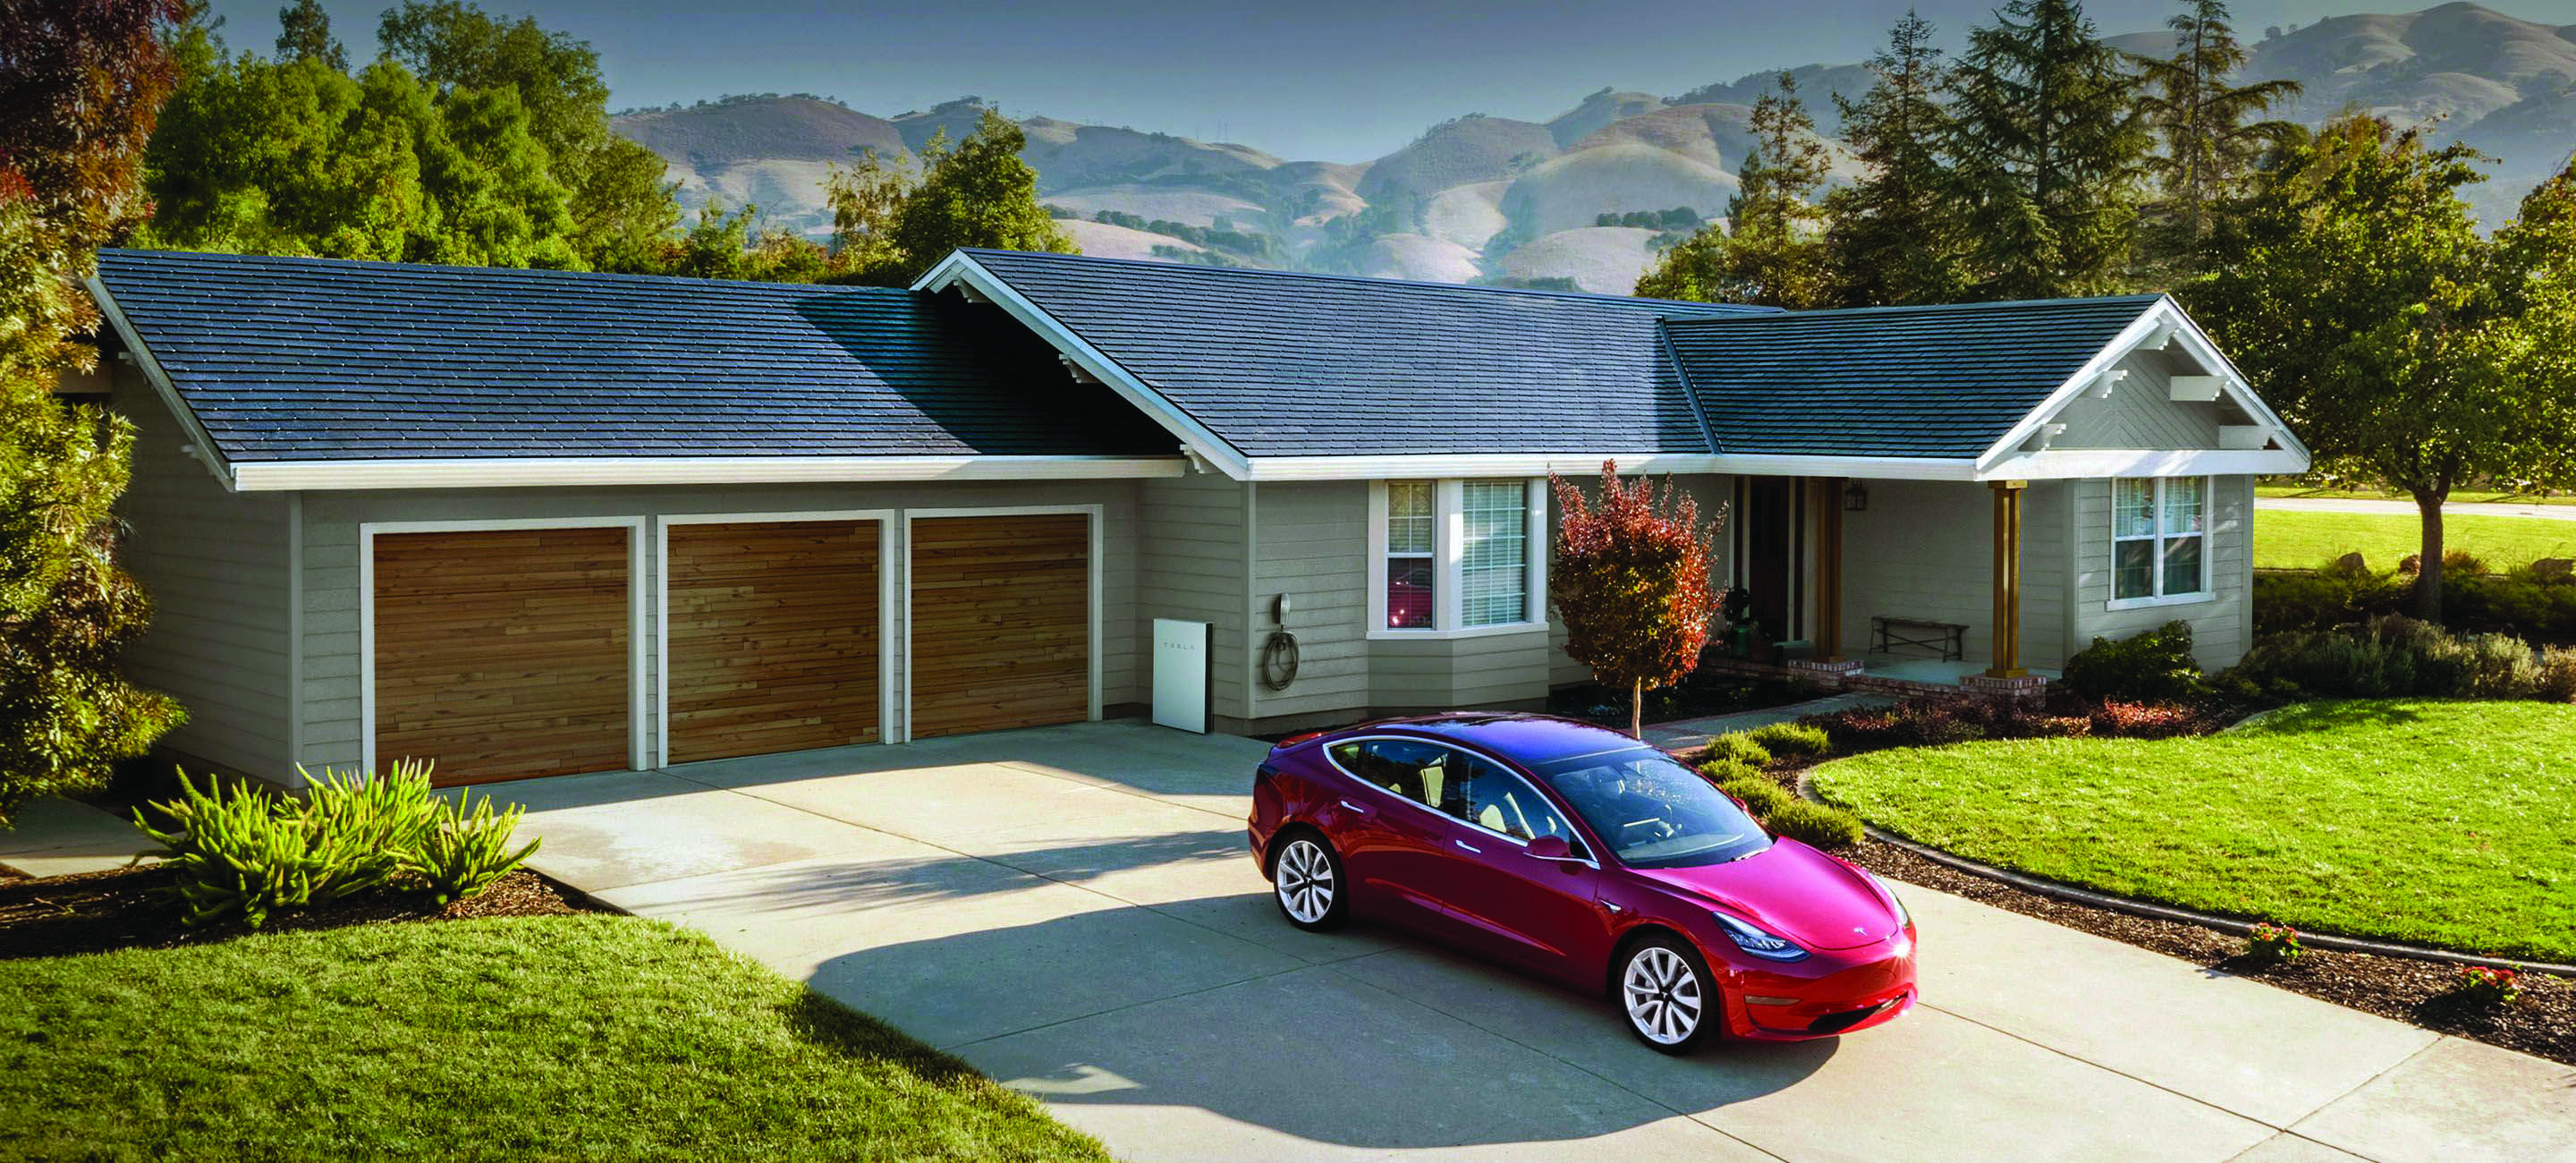 Conveniences And Drawbacks Of Solar Roof Tiles That You Need To Understand About Tesla Solar Roof Solar Roof Tiles Solar Roof